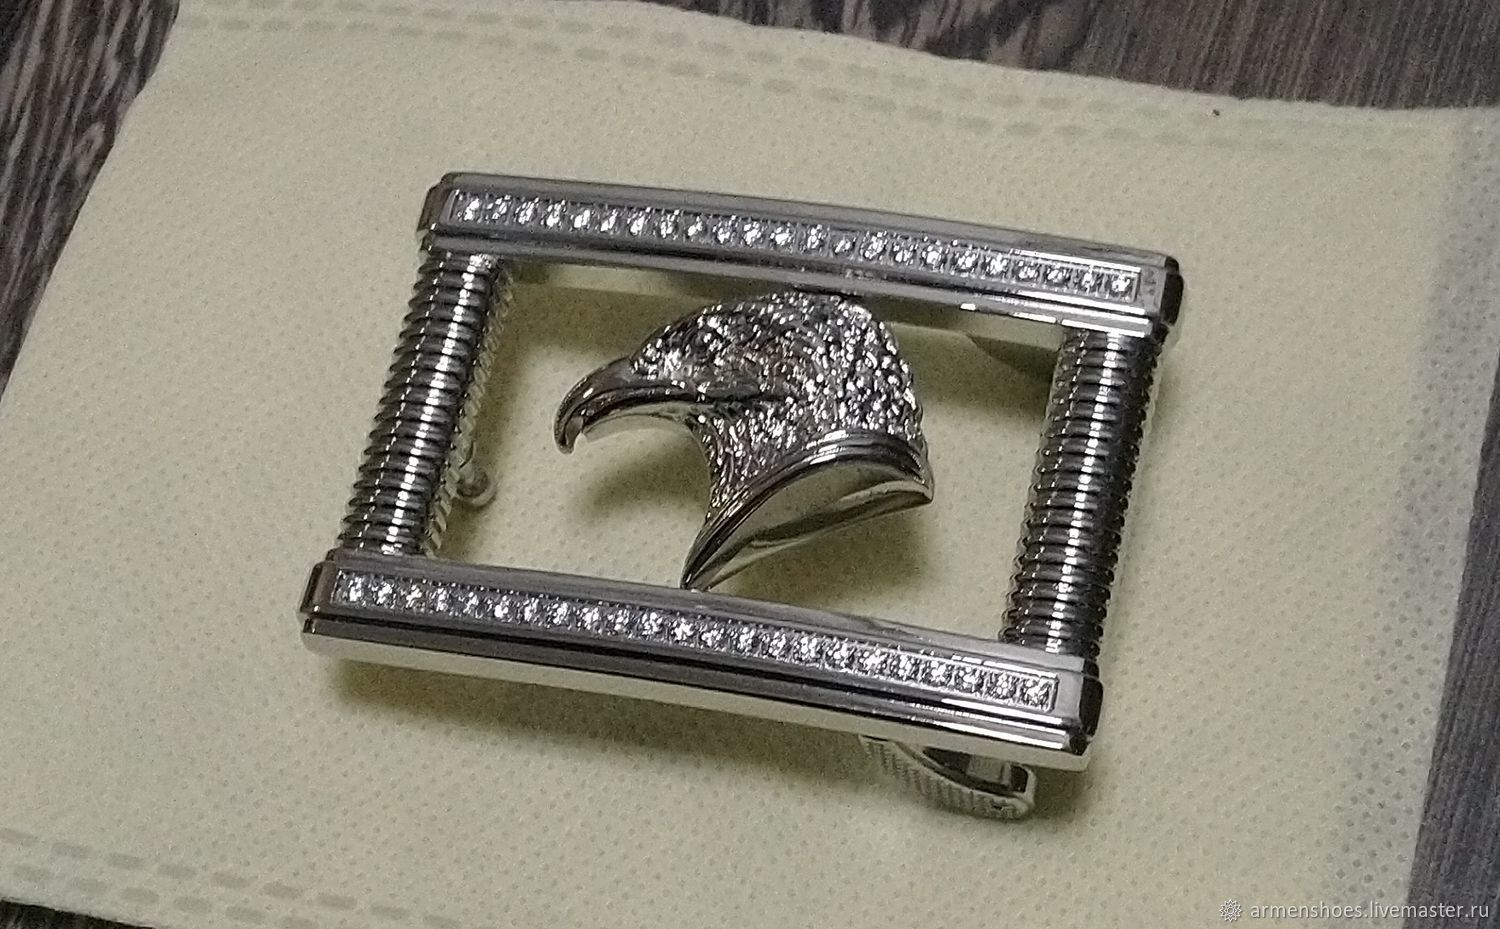 Belt buckle, stainless steel, for belts with a width of 3.3-3.5 cm, Accessories4, Tosno,  Фото №1